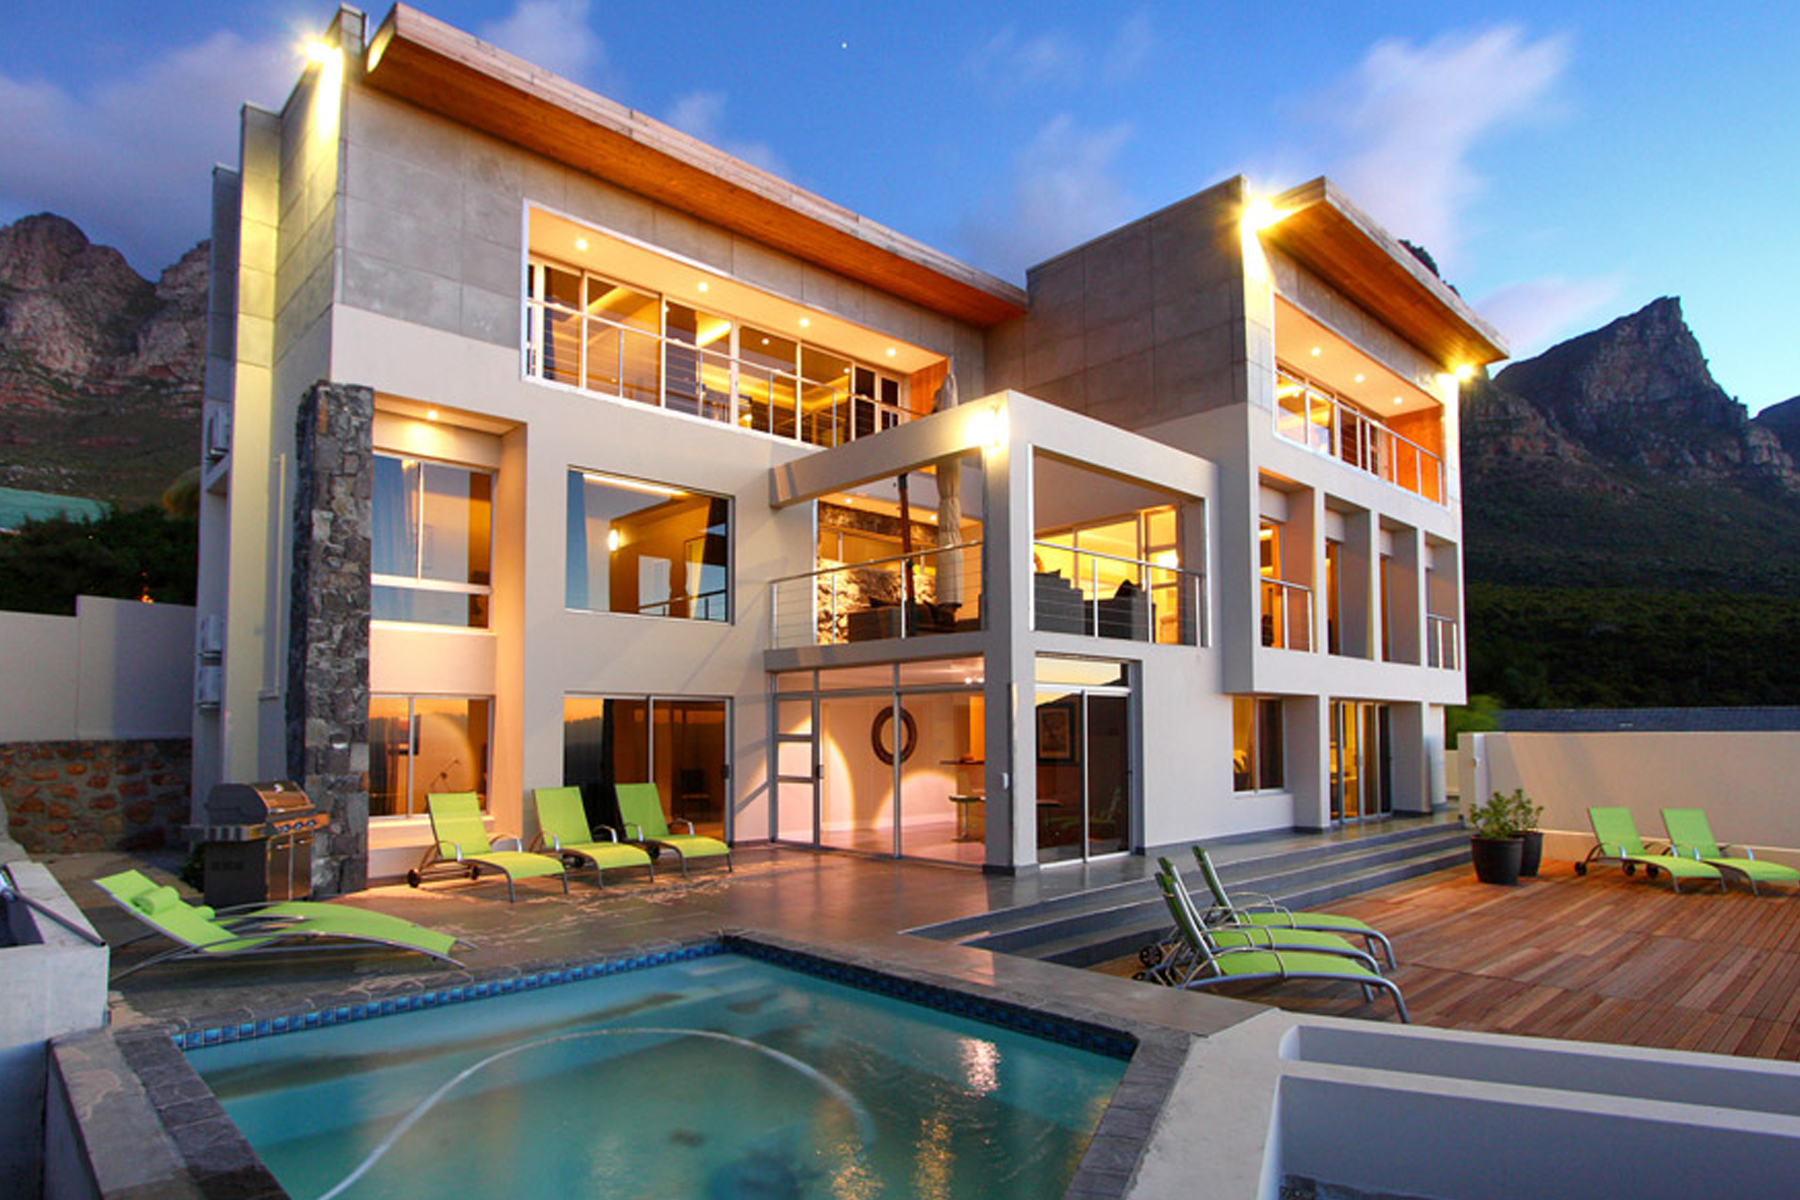 Single Family Home for Sale at Camps Bay Cape Town, Western Cape, South Africa